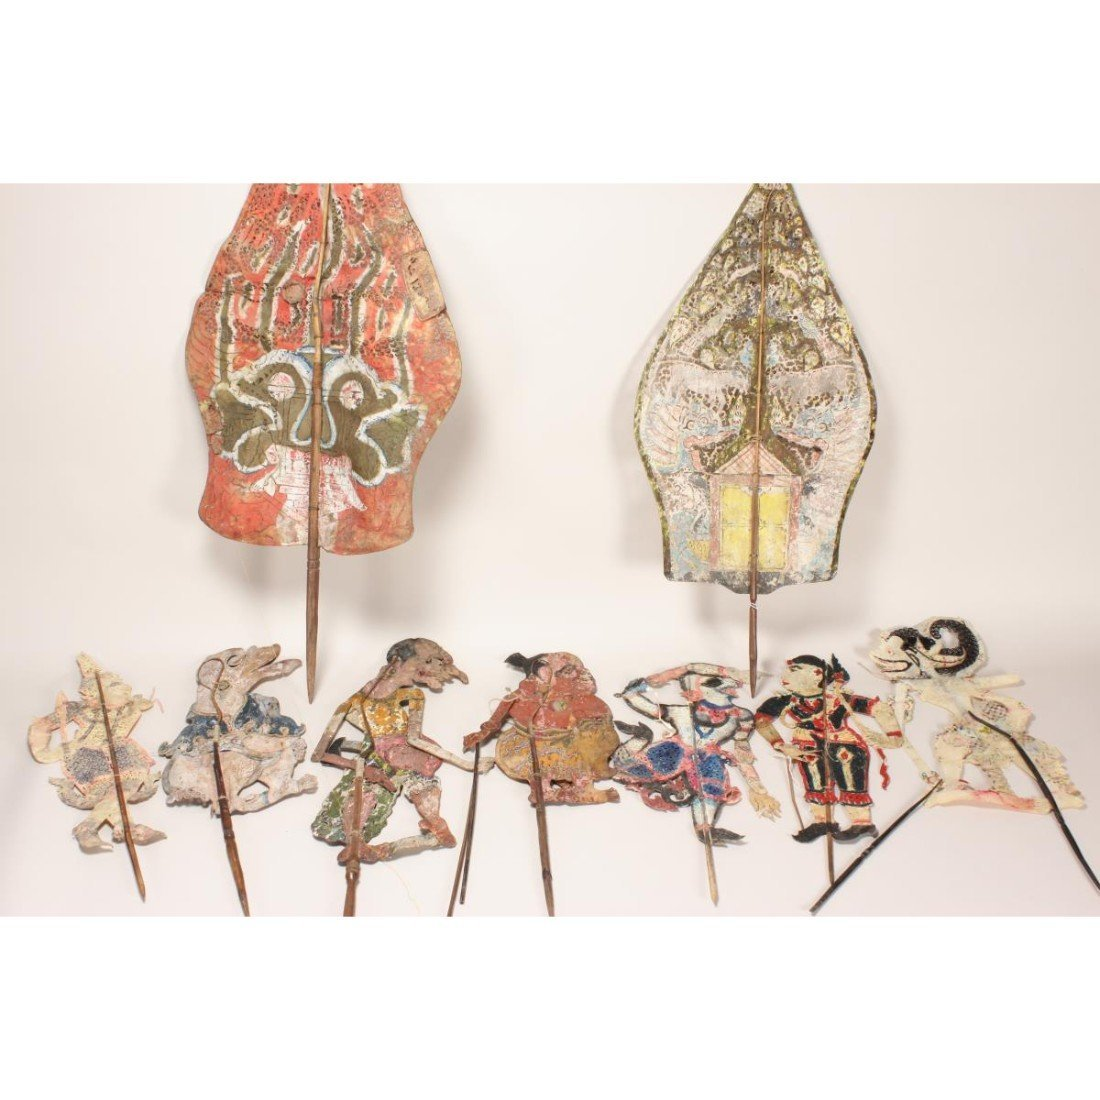 Group of Six Indonesian Shadow Puppets,